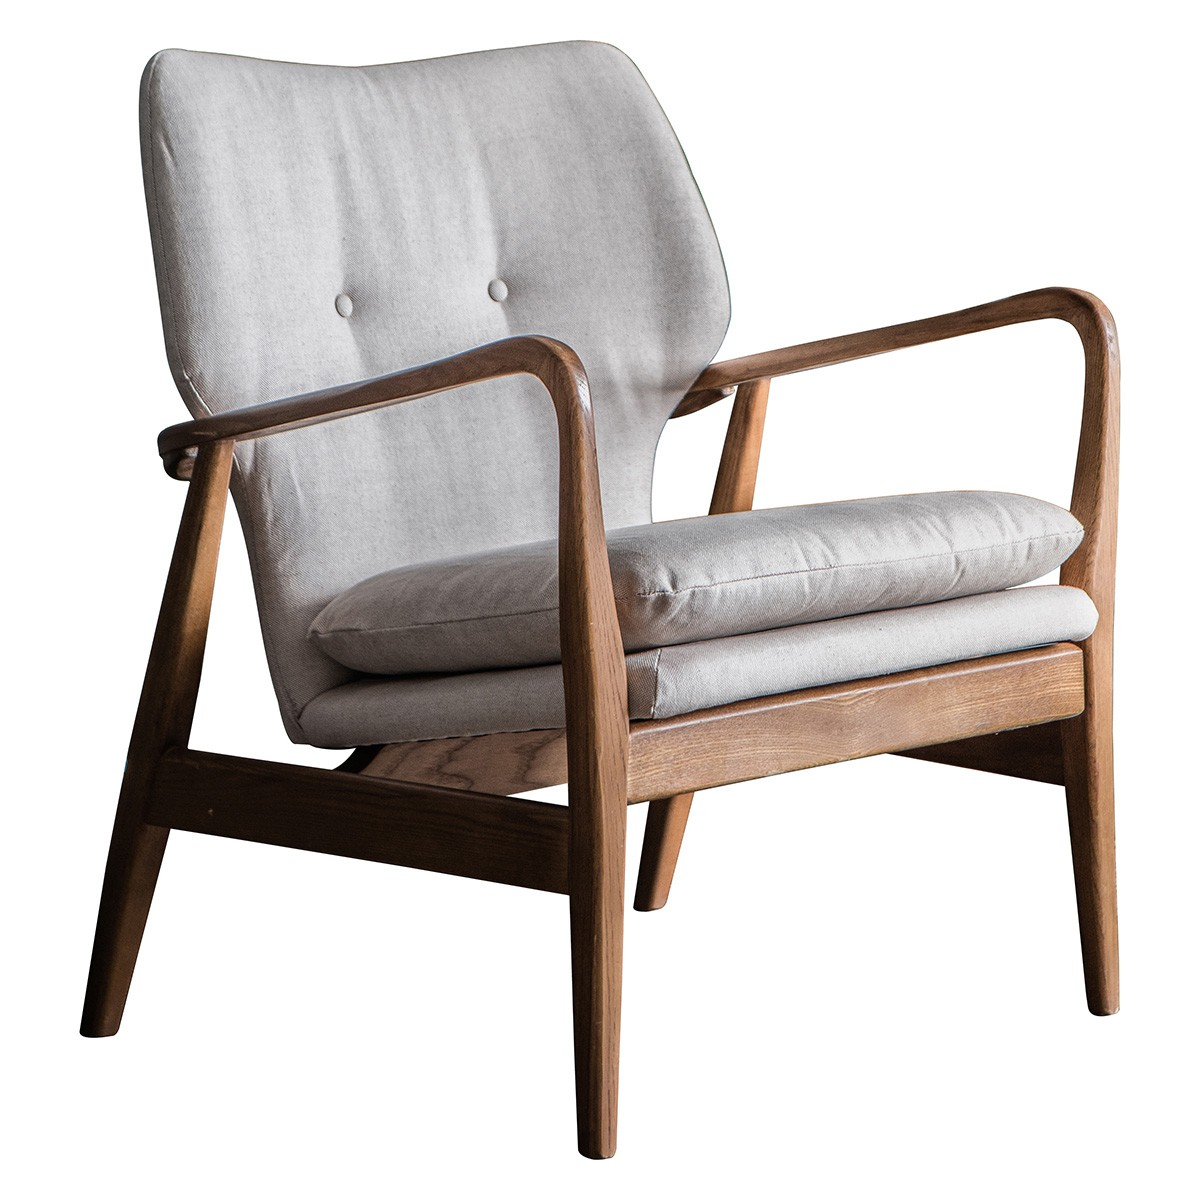 Jepson Fabric & Oak Timber Armchair, Natural